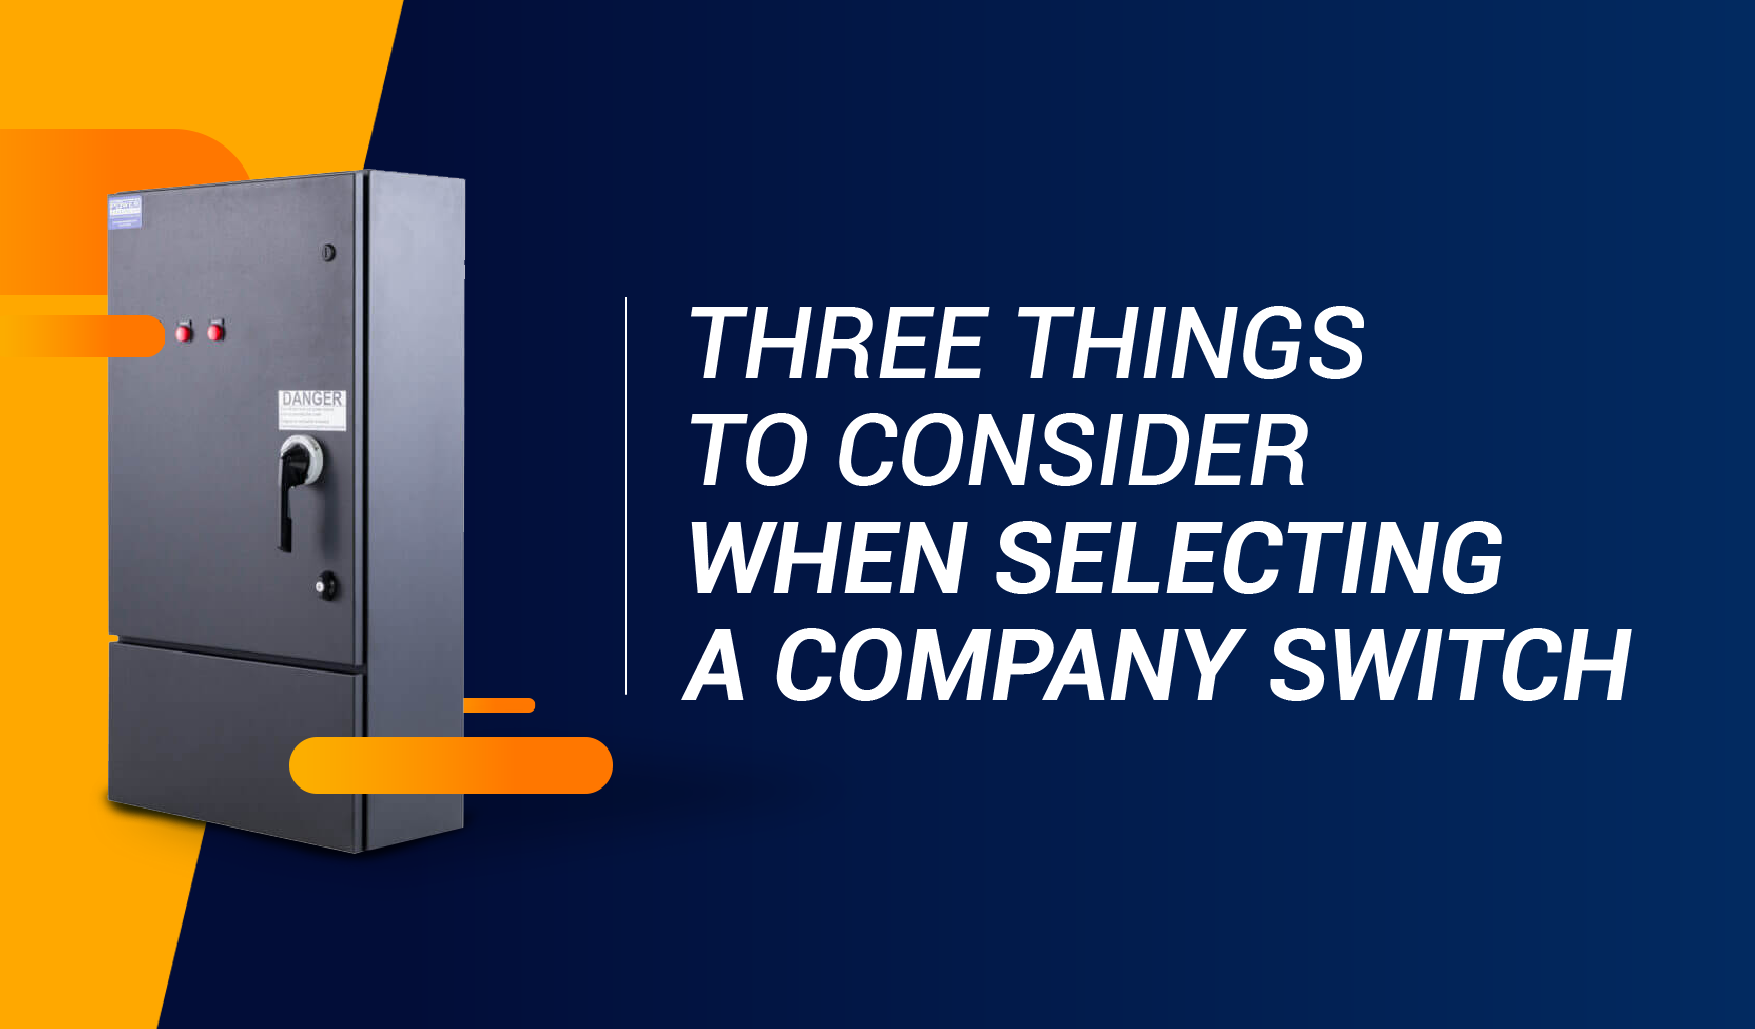 Three Things to Consider When Selecting a Company Switch